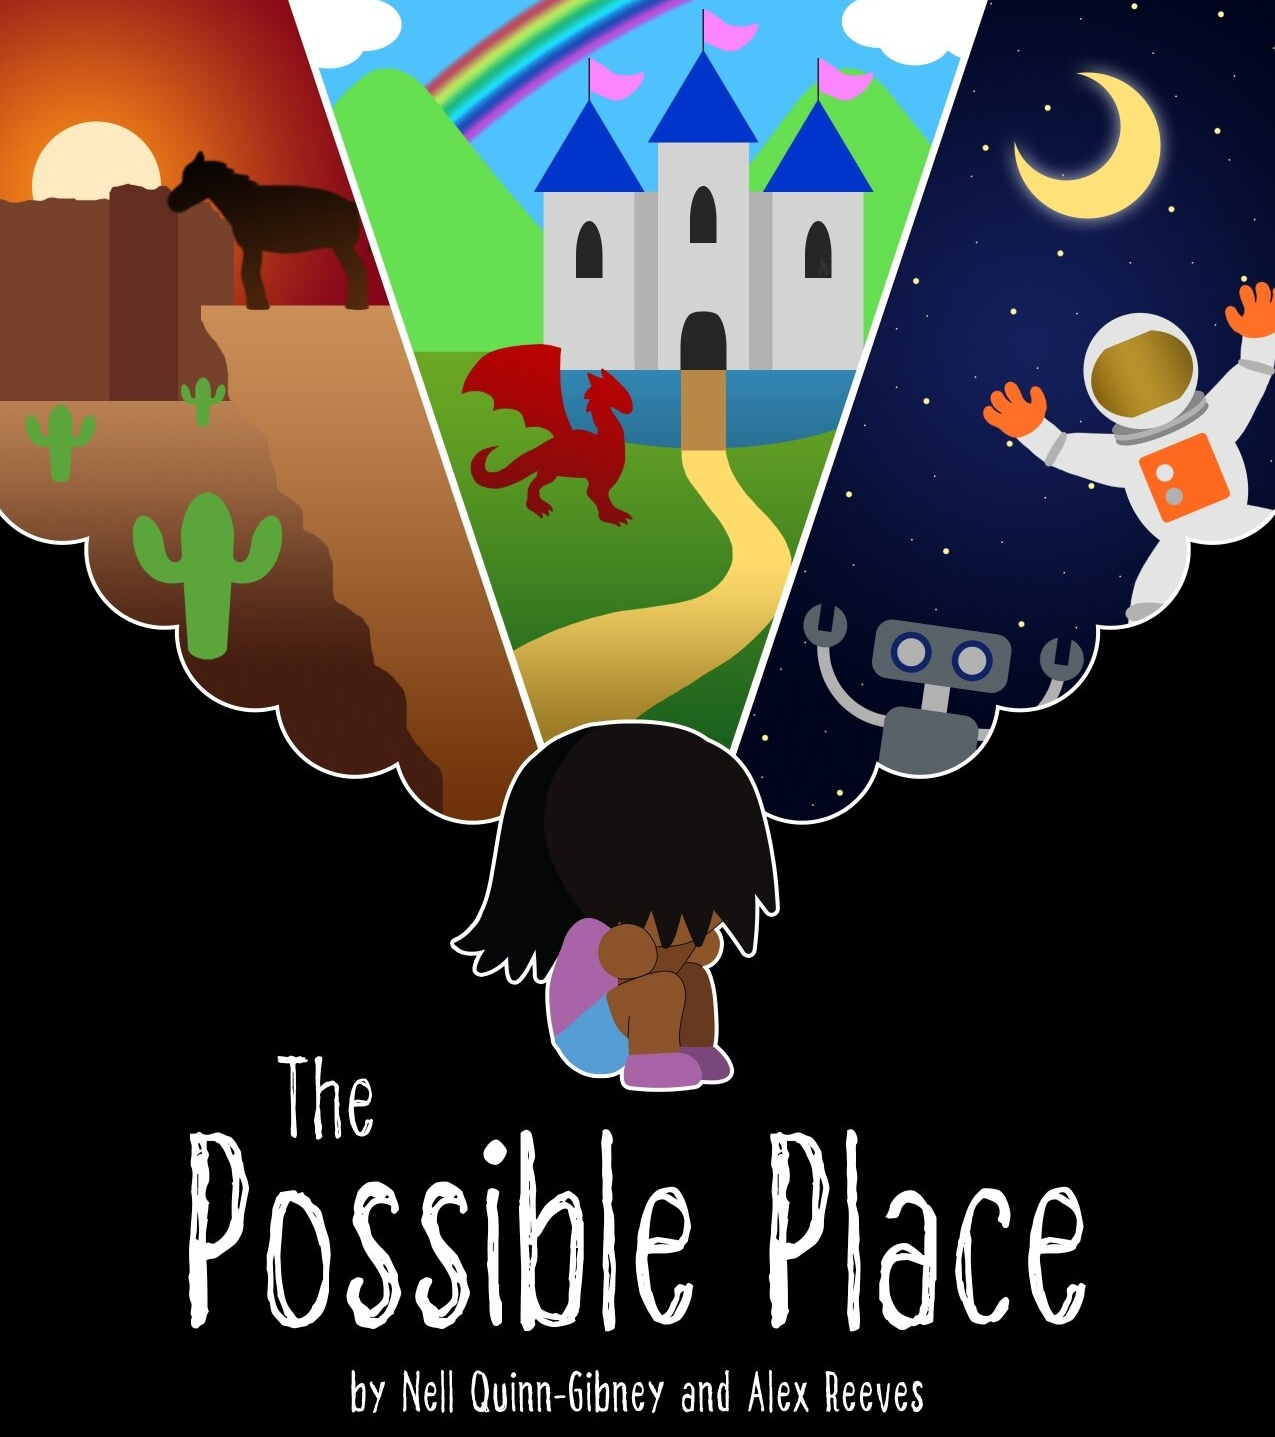 Out of Ink Productions -  The Possible Place   Anything is possible. Close your eyes. Don't open them.   When?   Saturday, 10/12 - 5:00 PM  Sunday, 10/13 - 7:00 PM  Friday, 10/18 - 10:30 PM  Saturday, 10/19 - 7:00 PM  Sunday, 10/20 - 1:30 PM    Where?  MAP Underground  218 W Saratoga St.